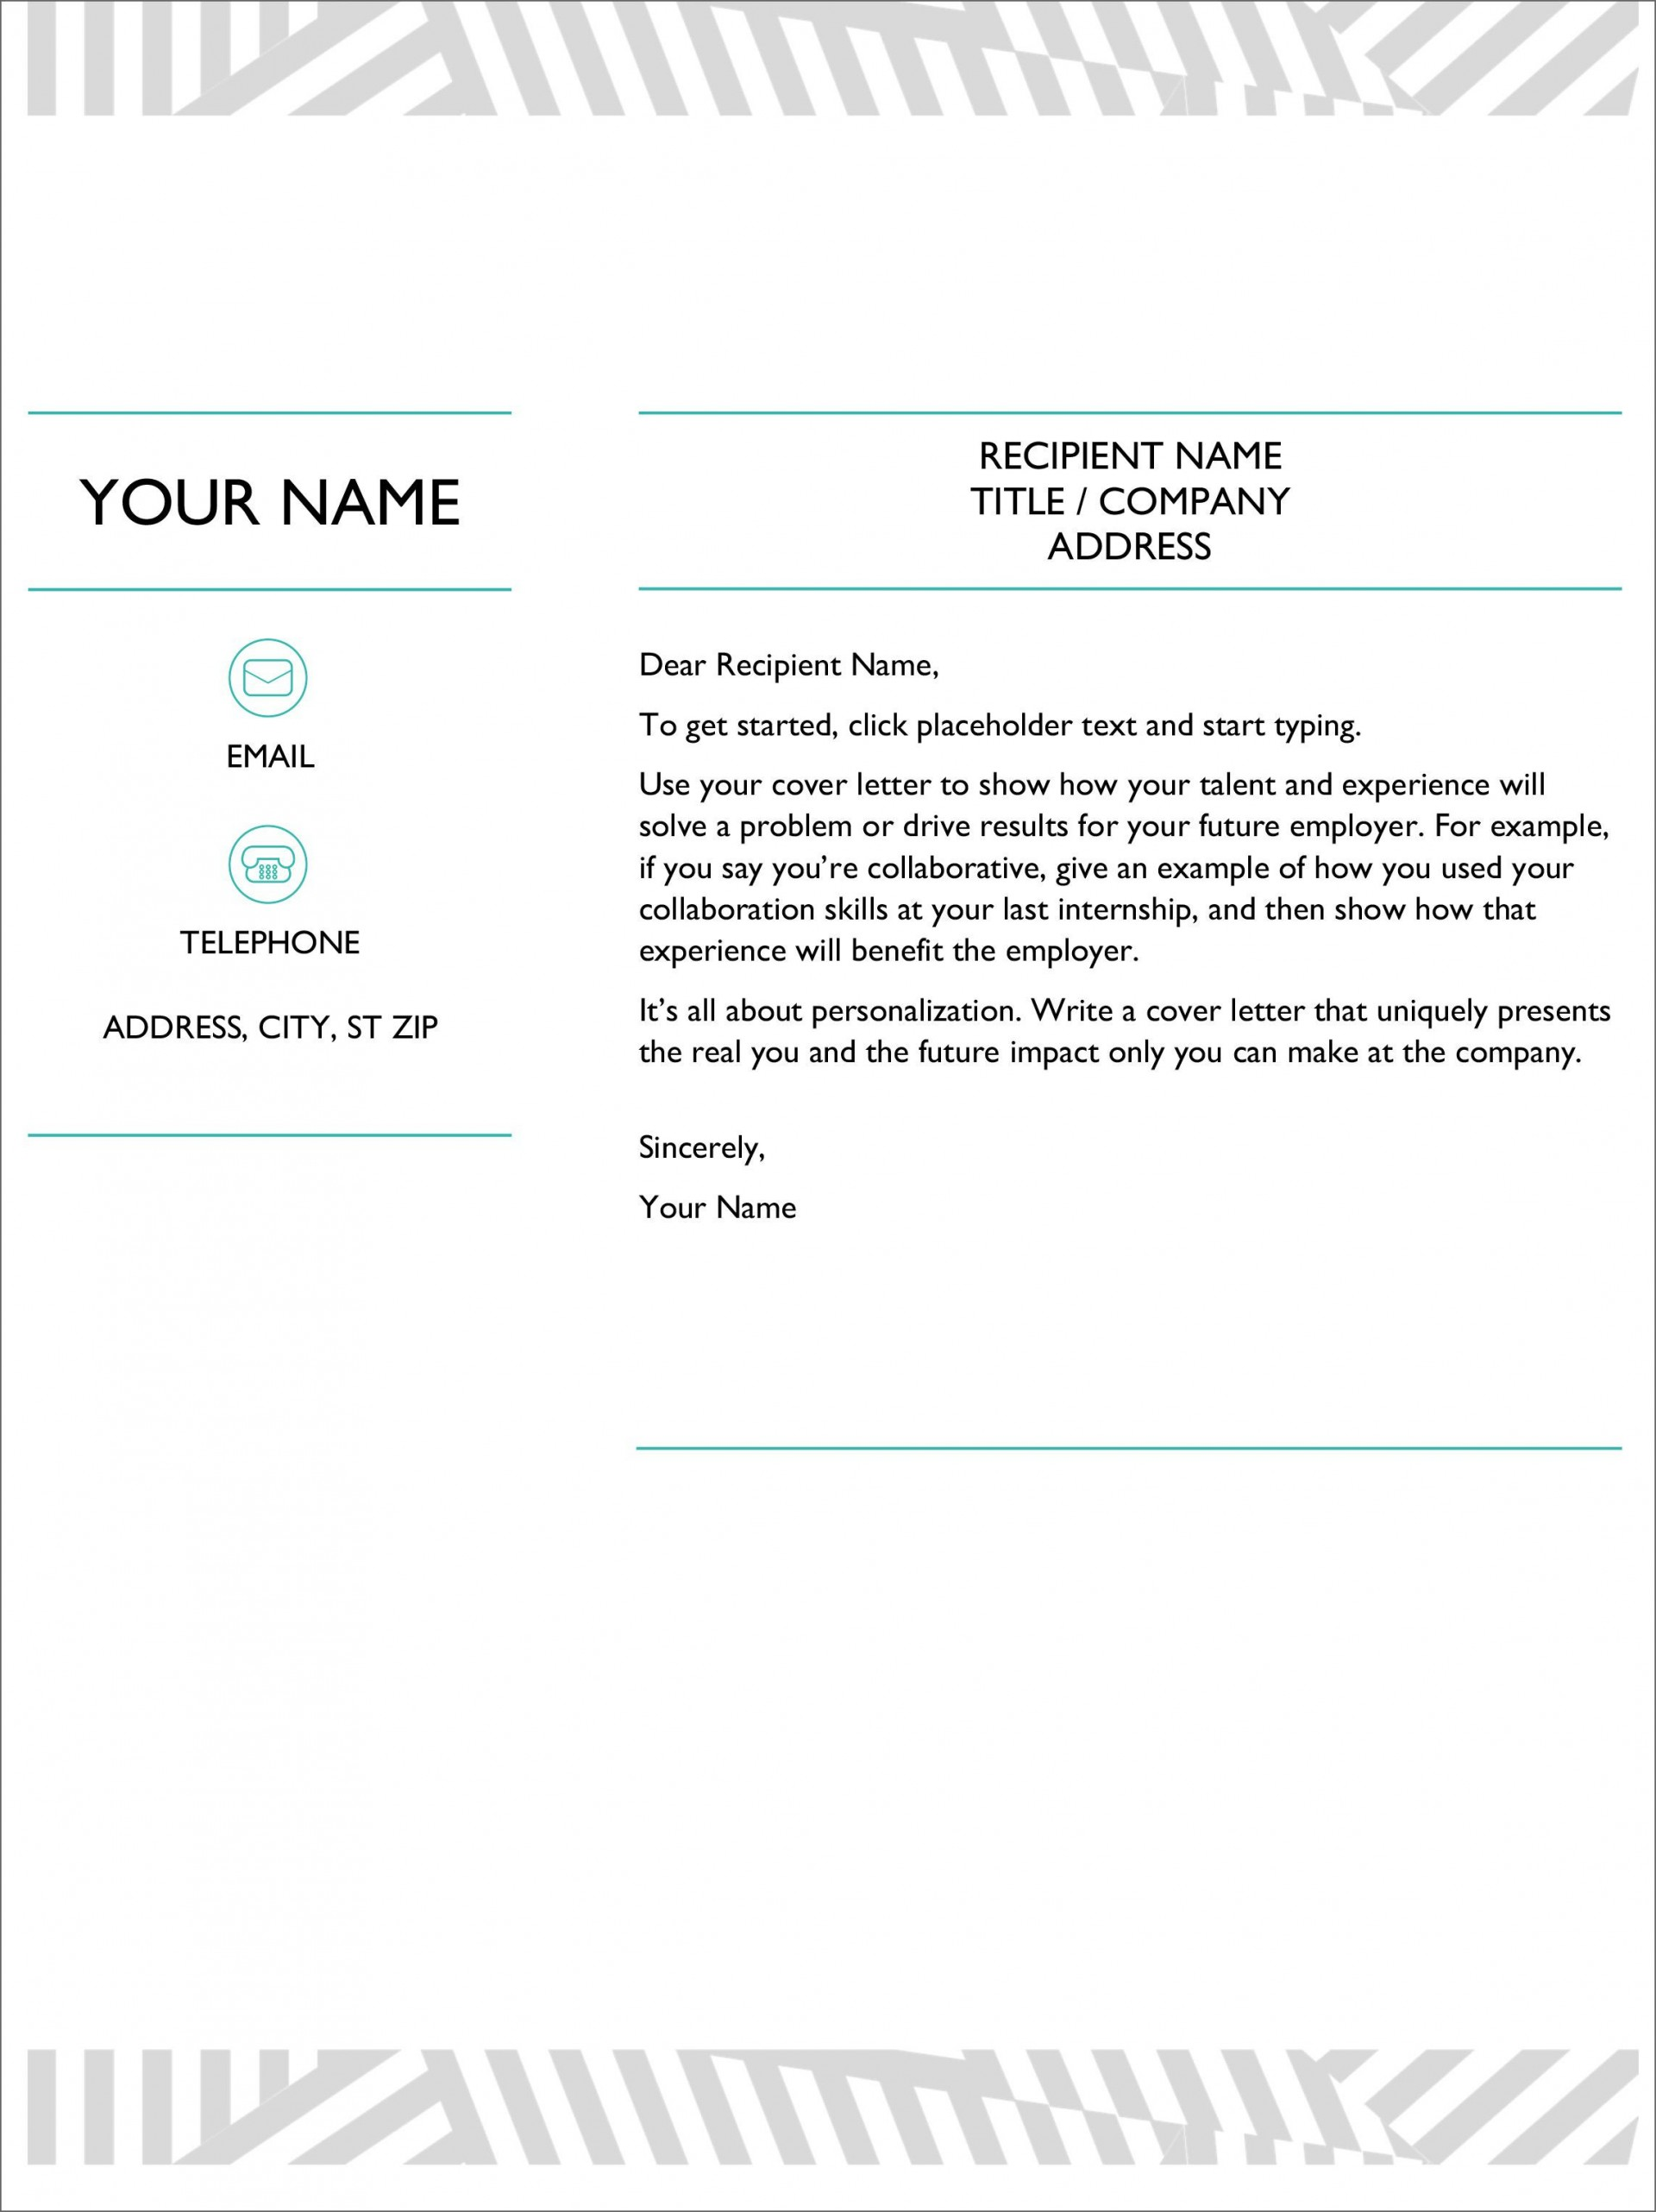 002 Fascinating Download Resume Cover Letter Sample Free Highest Clarity 1920